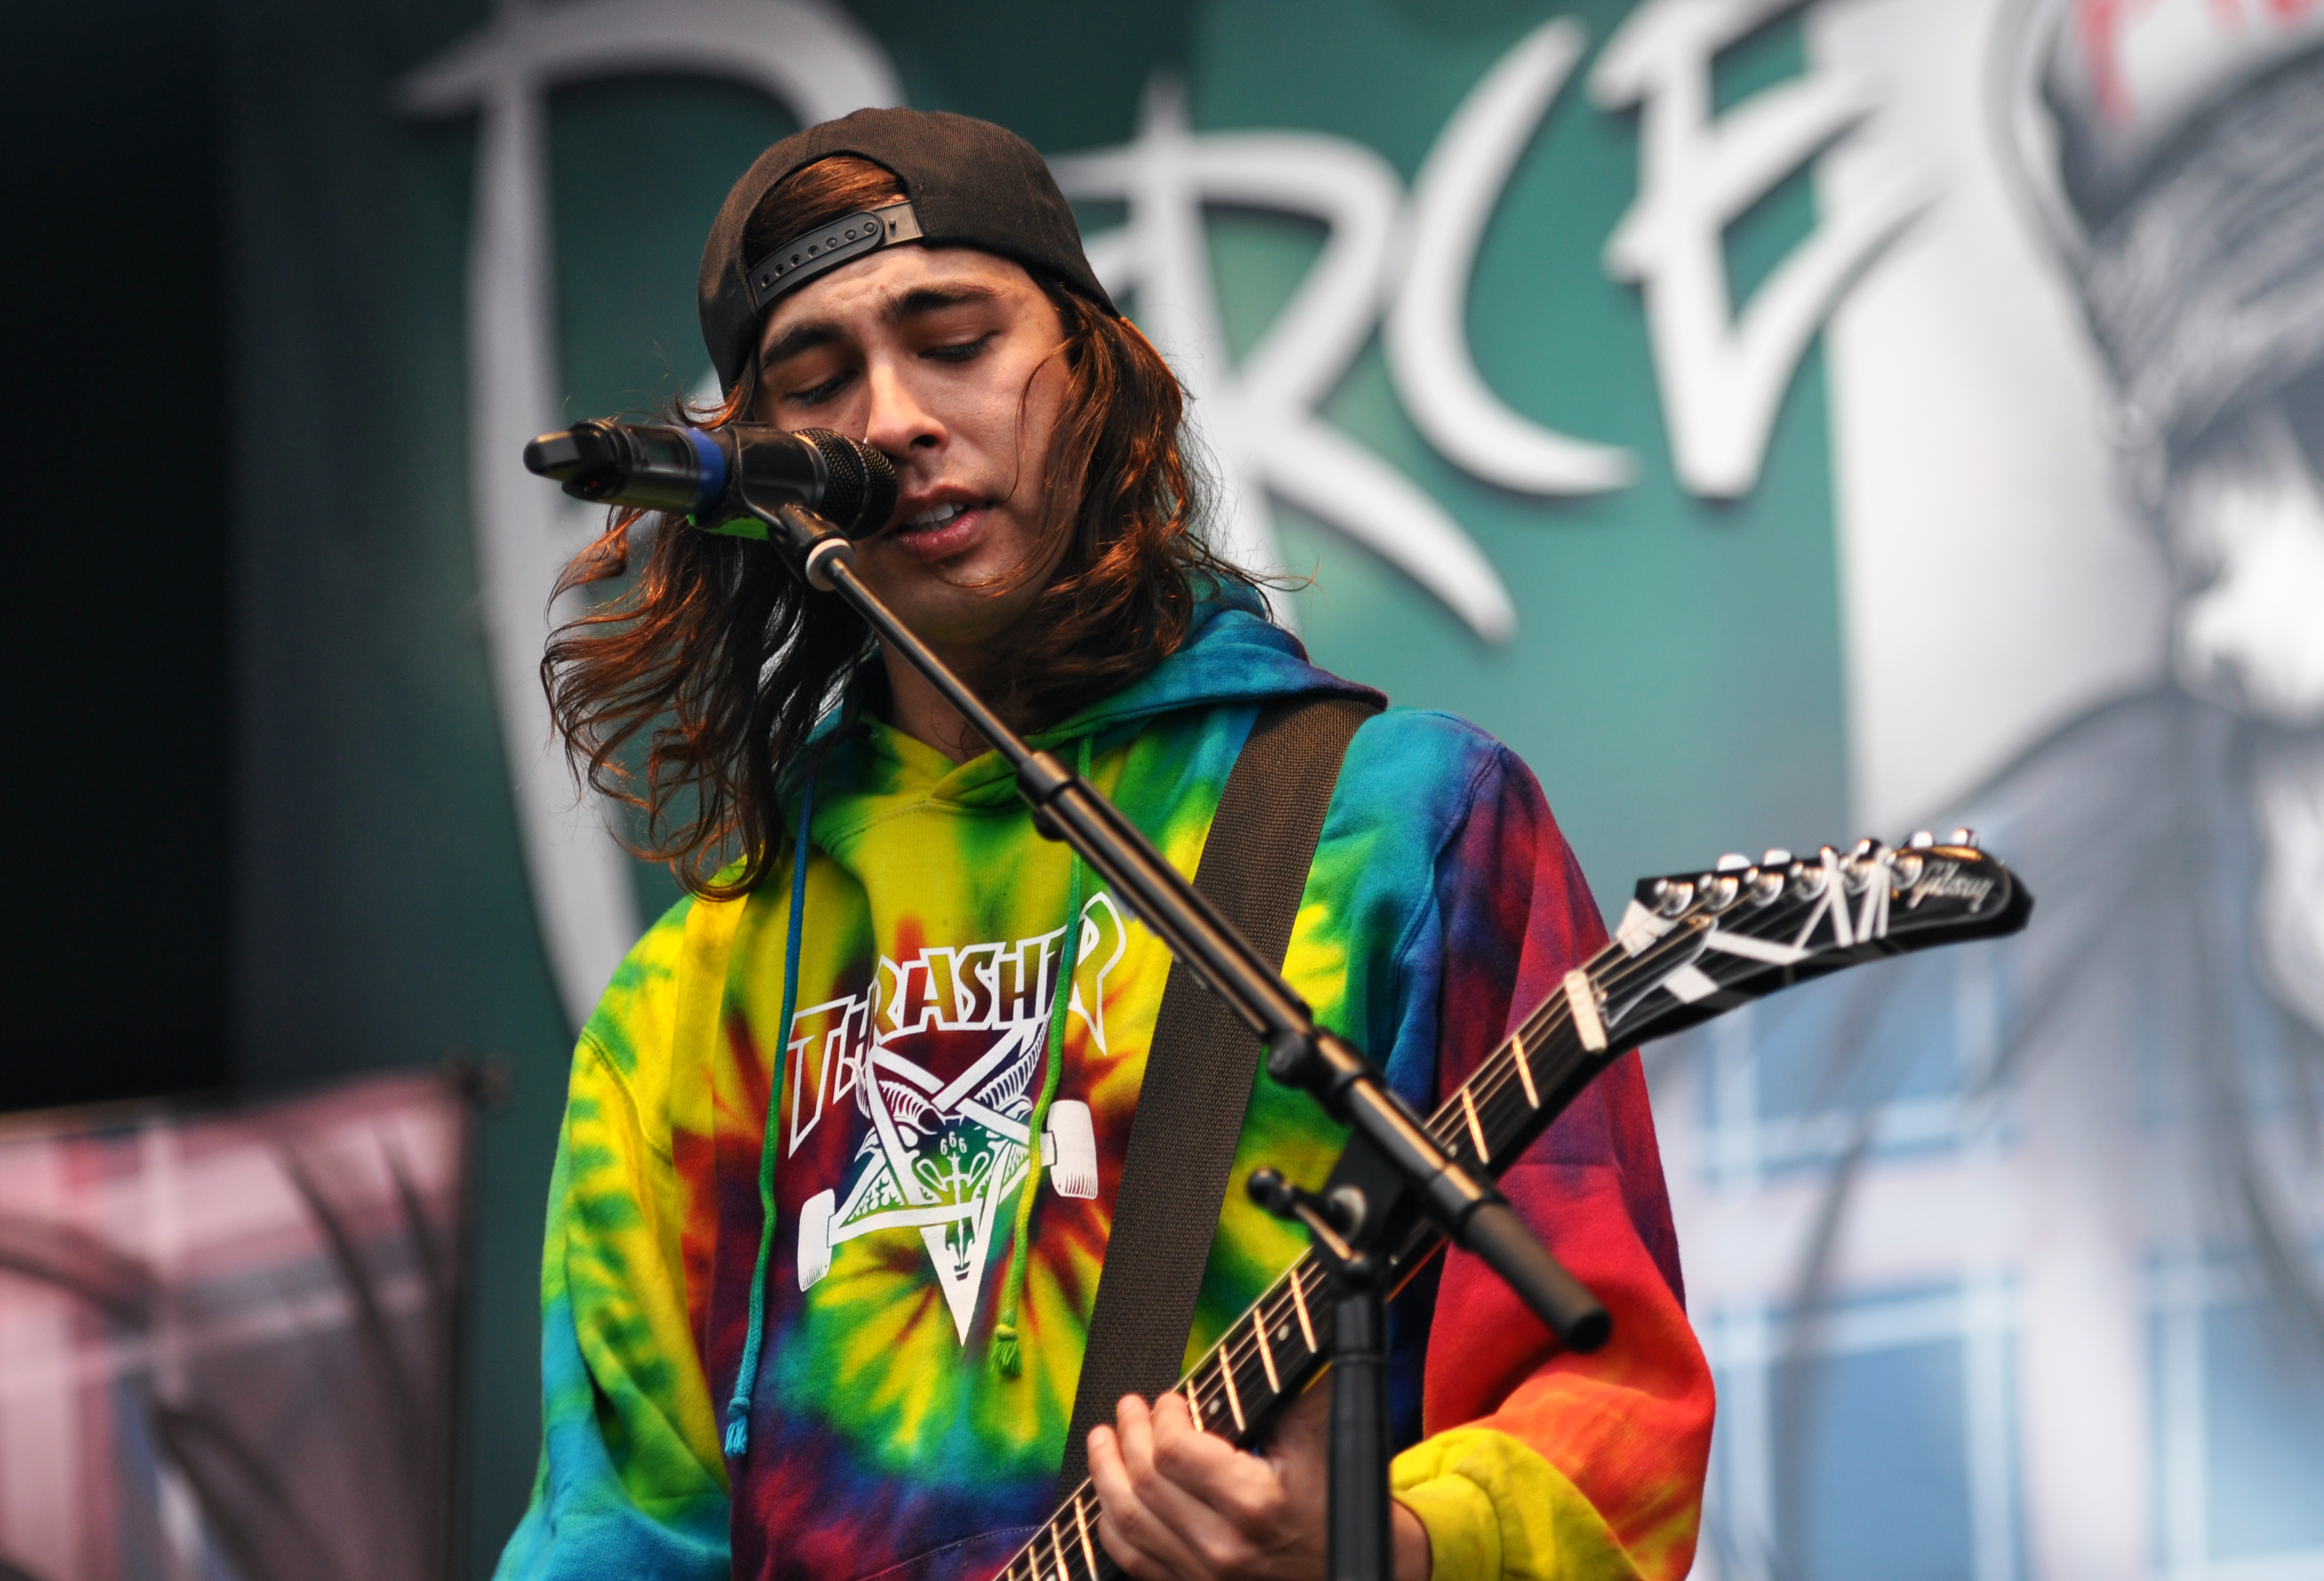 FileFile 13 06 08 RaR Pierce the Veil Vic Fuentes 03jpg 3865x2629